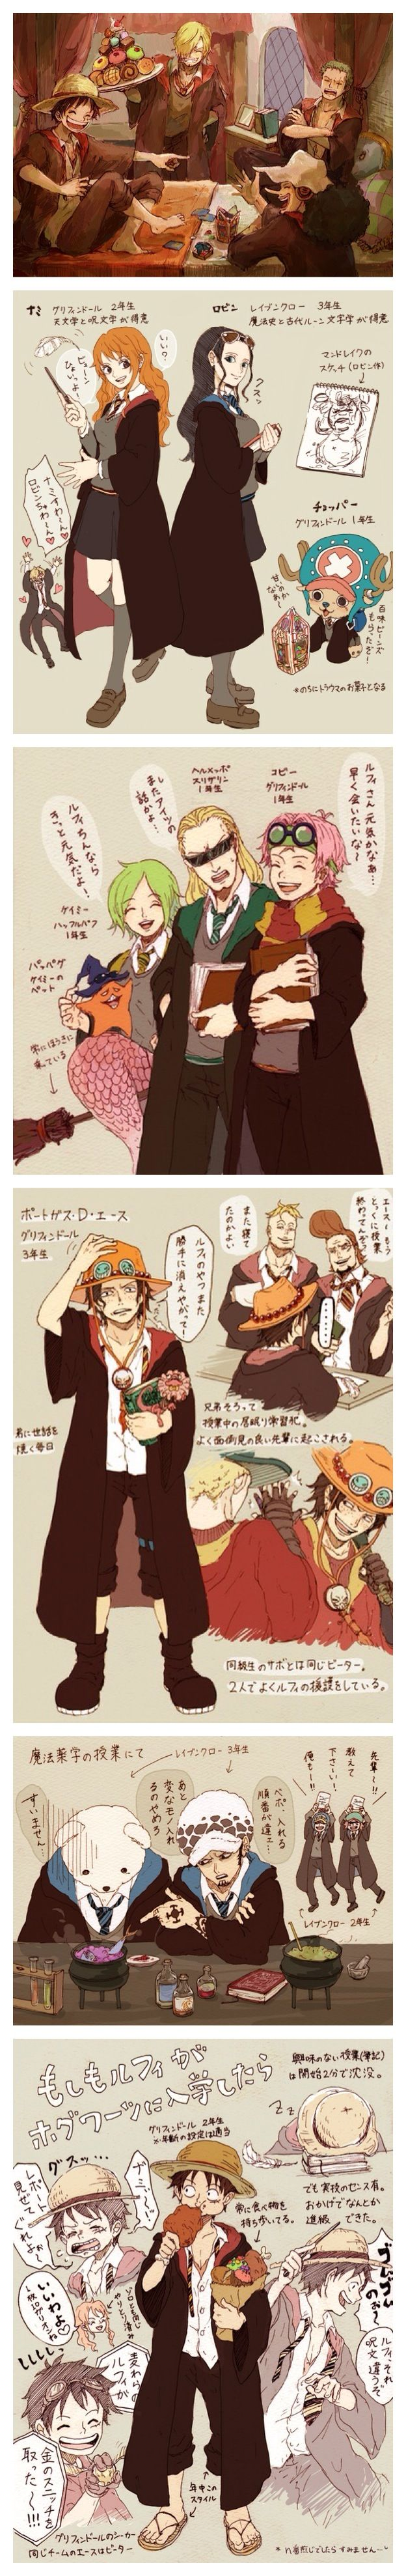 GoBoiano - The One Piece Cast Fits Too Perfect in the Harry Potter Universe